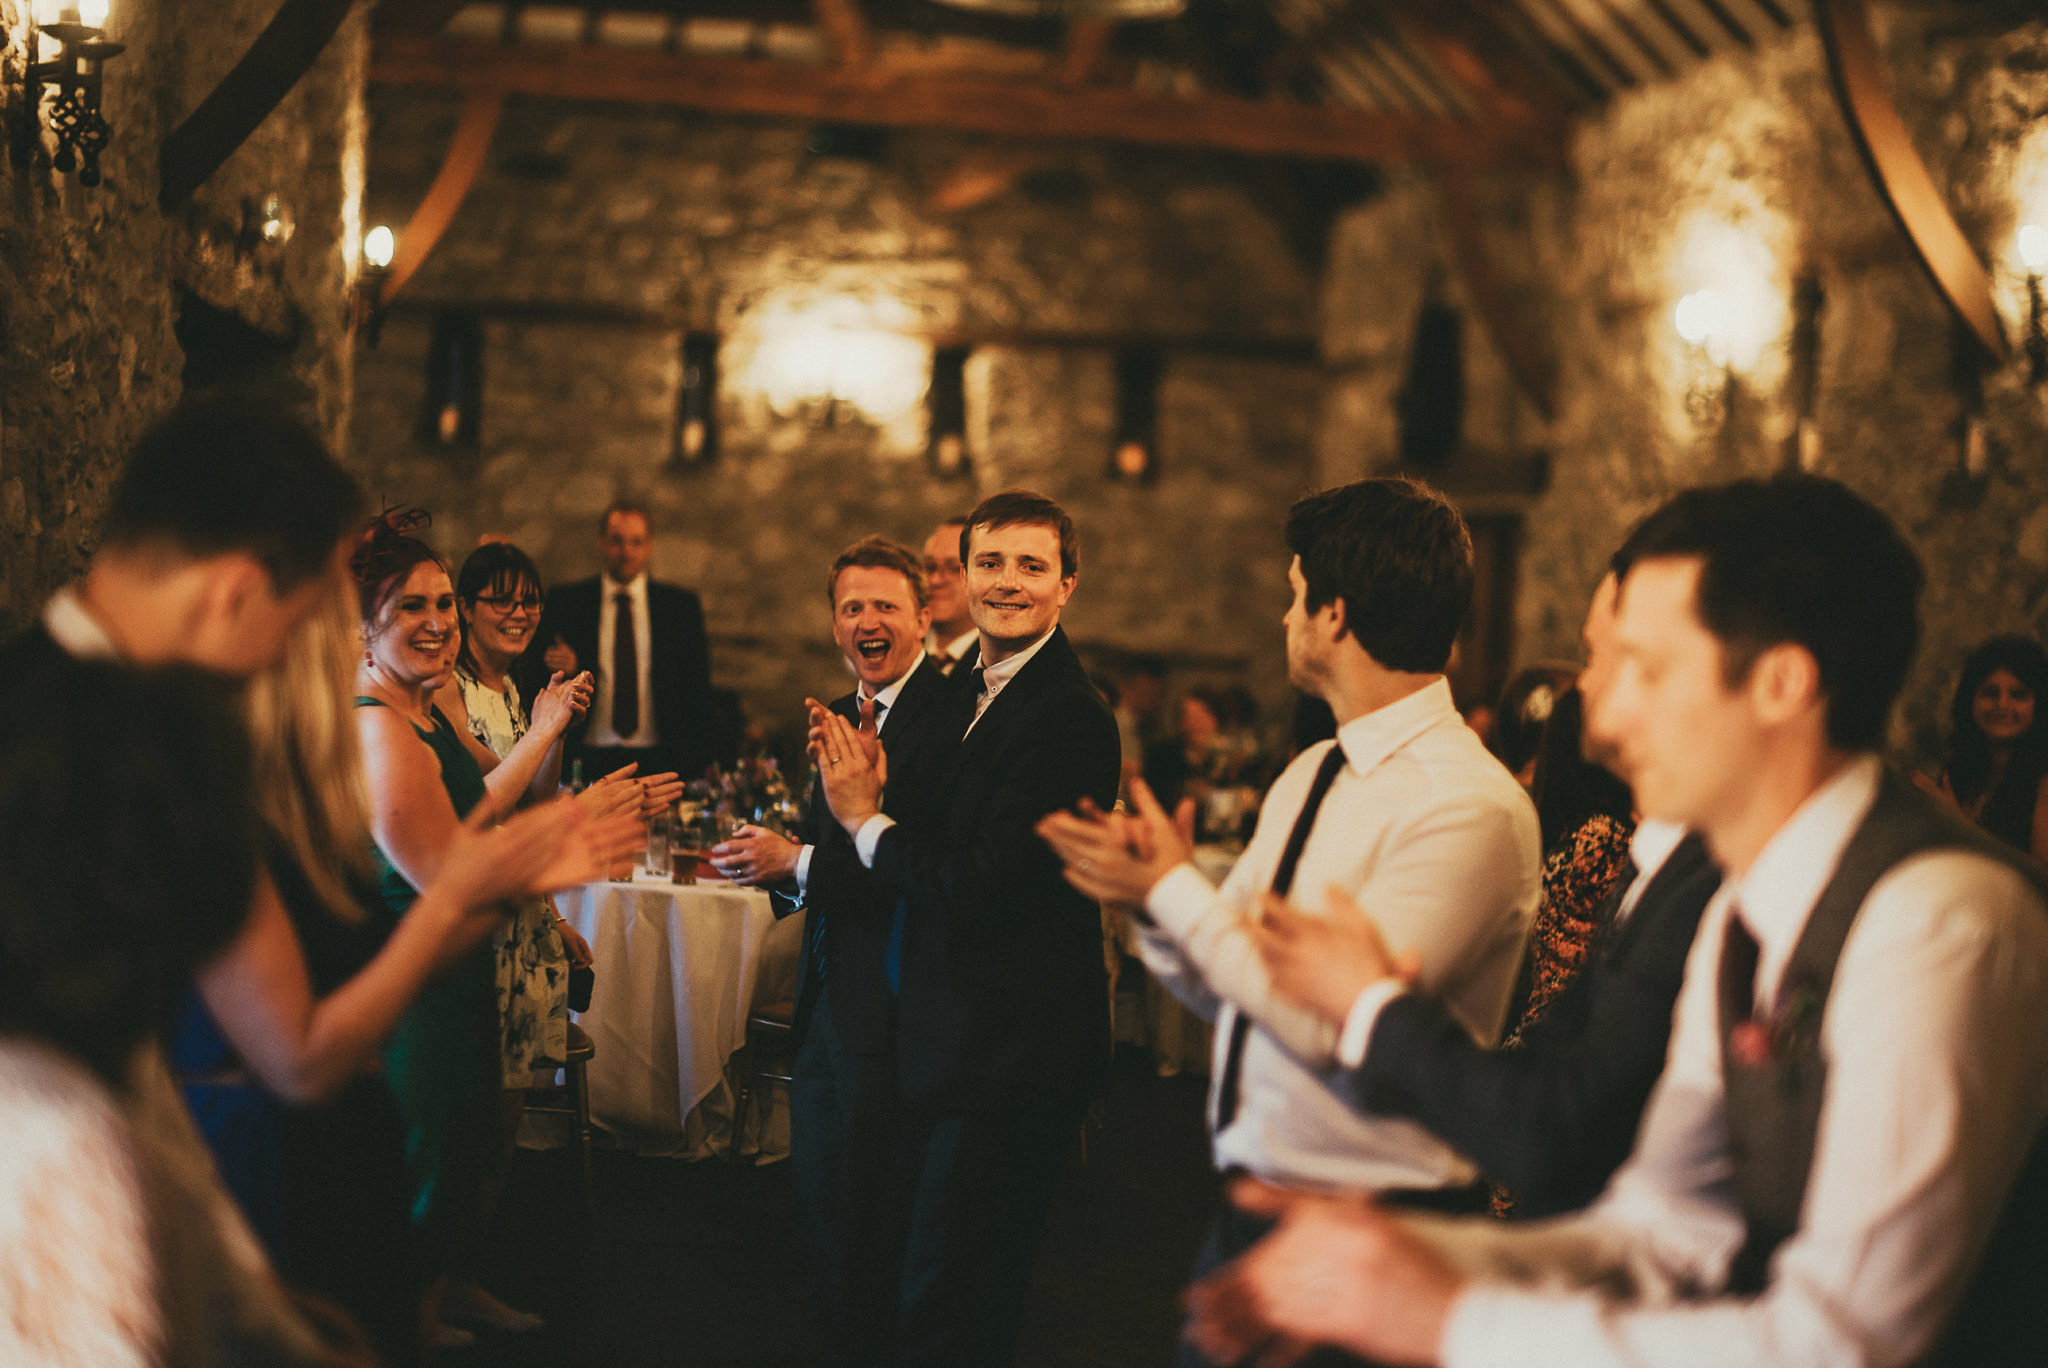 plas-isaf-corwen-north wales wedding-photography-photographer-91089